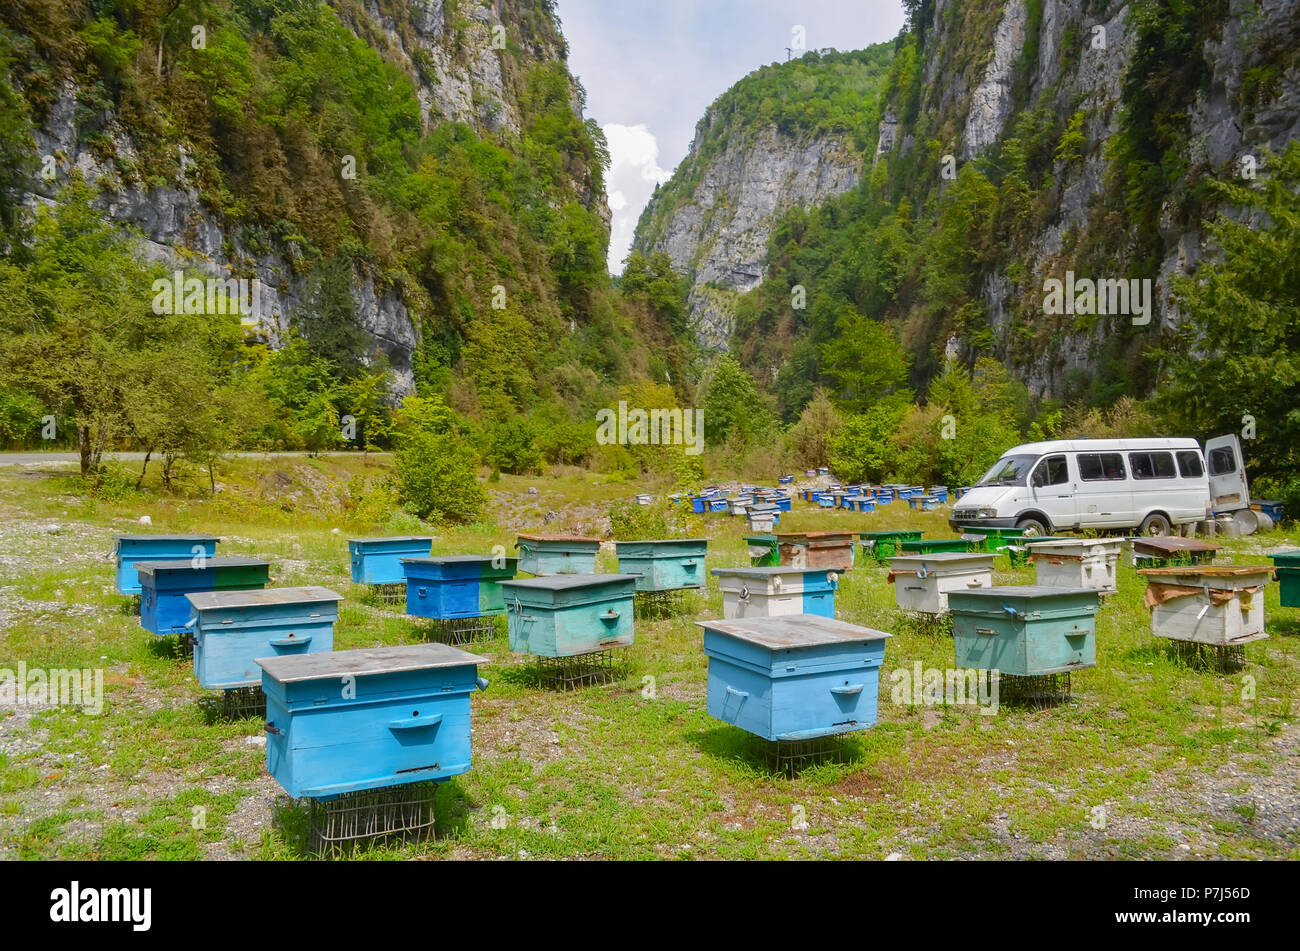 An apiary in a mountain gorge. A lot of colorful hives against the background of mountains - Stock Image